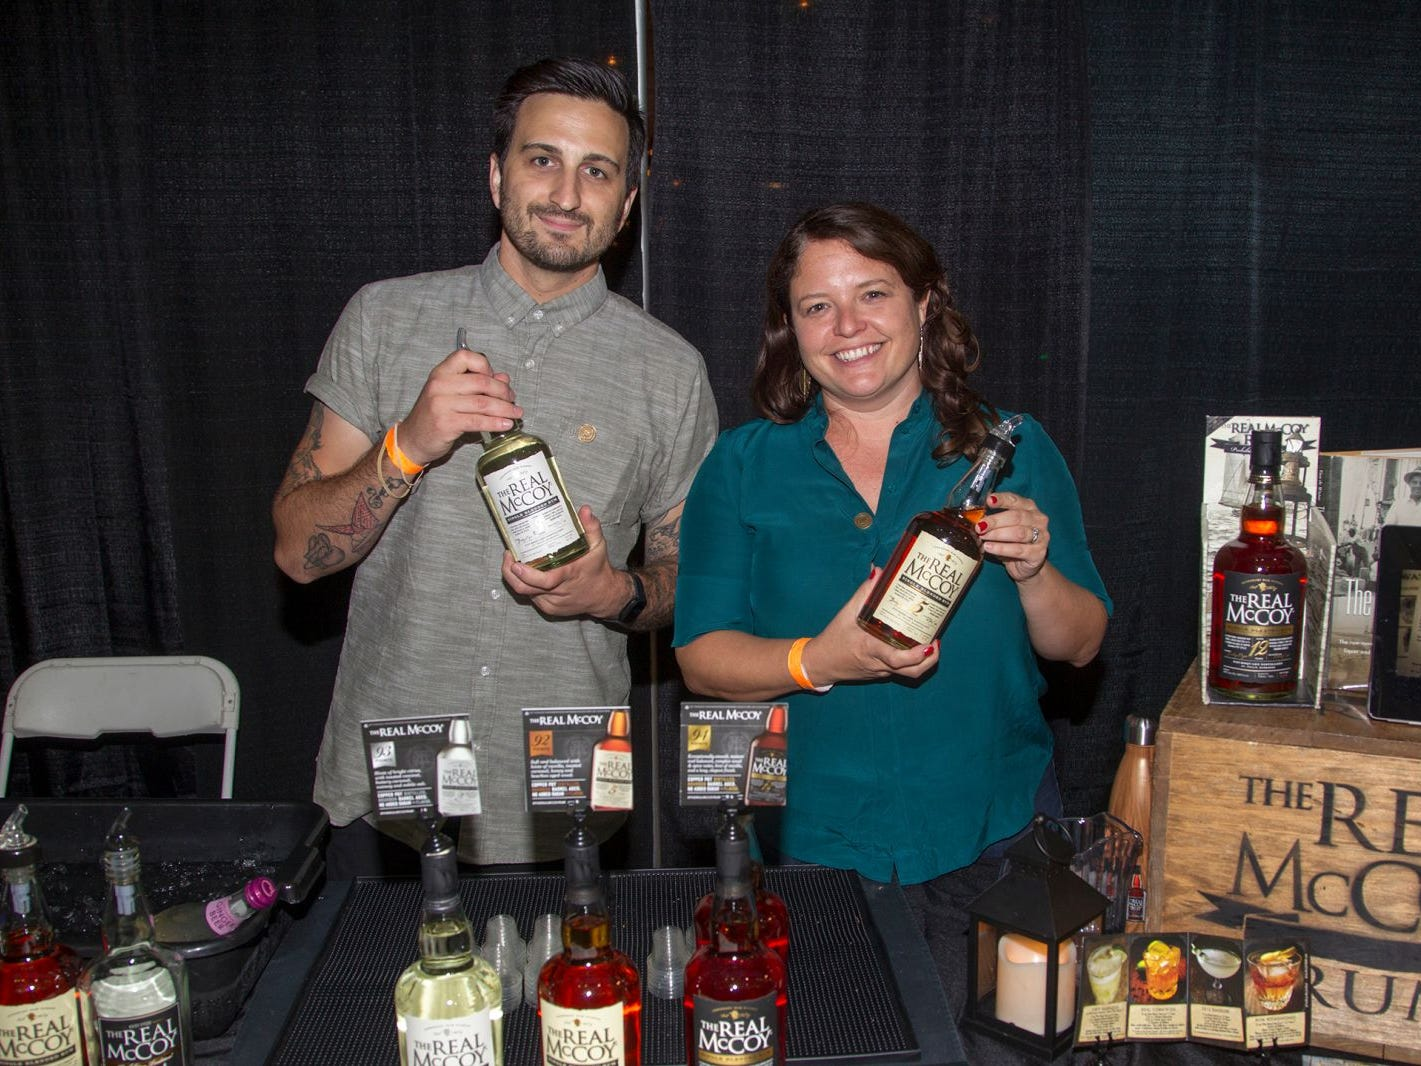 The Real Mc Coy - Joshua Perez, Abbi Miller. Jersey City Craft Distillery Fest at the Harborside Atrium featured more than 100 styles of spirits. Guests had the chance to taste craft-distilled spirits from moonshine, rum, cognac, whiskey, vodka, gin, tequila and more. 09/08/2018